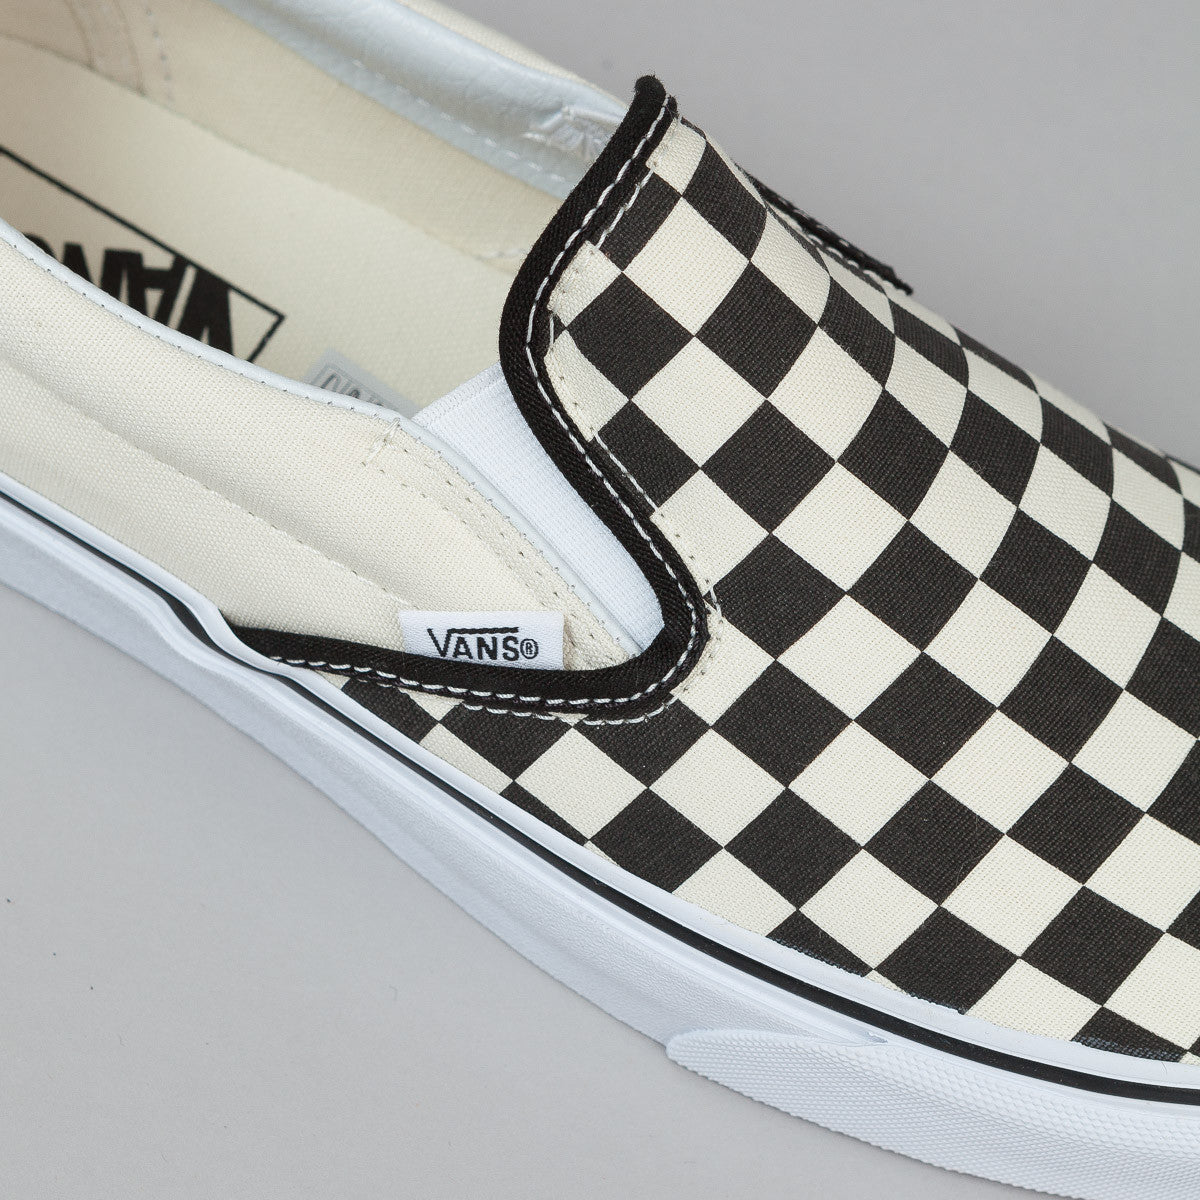 Vans Classic Slip-On Shoes - Black & White Checkerboard / White